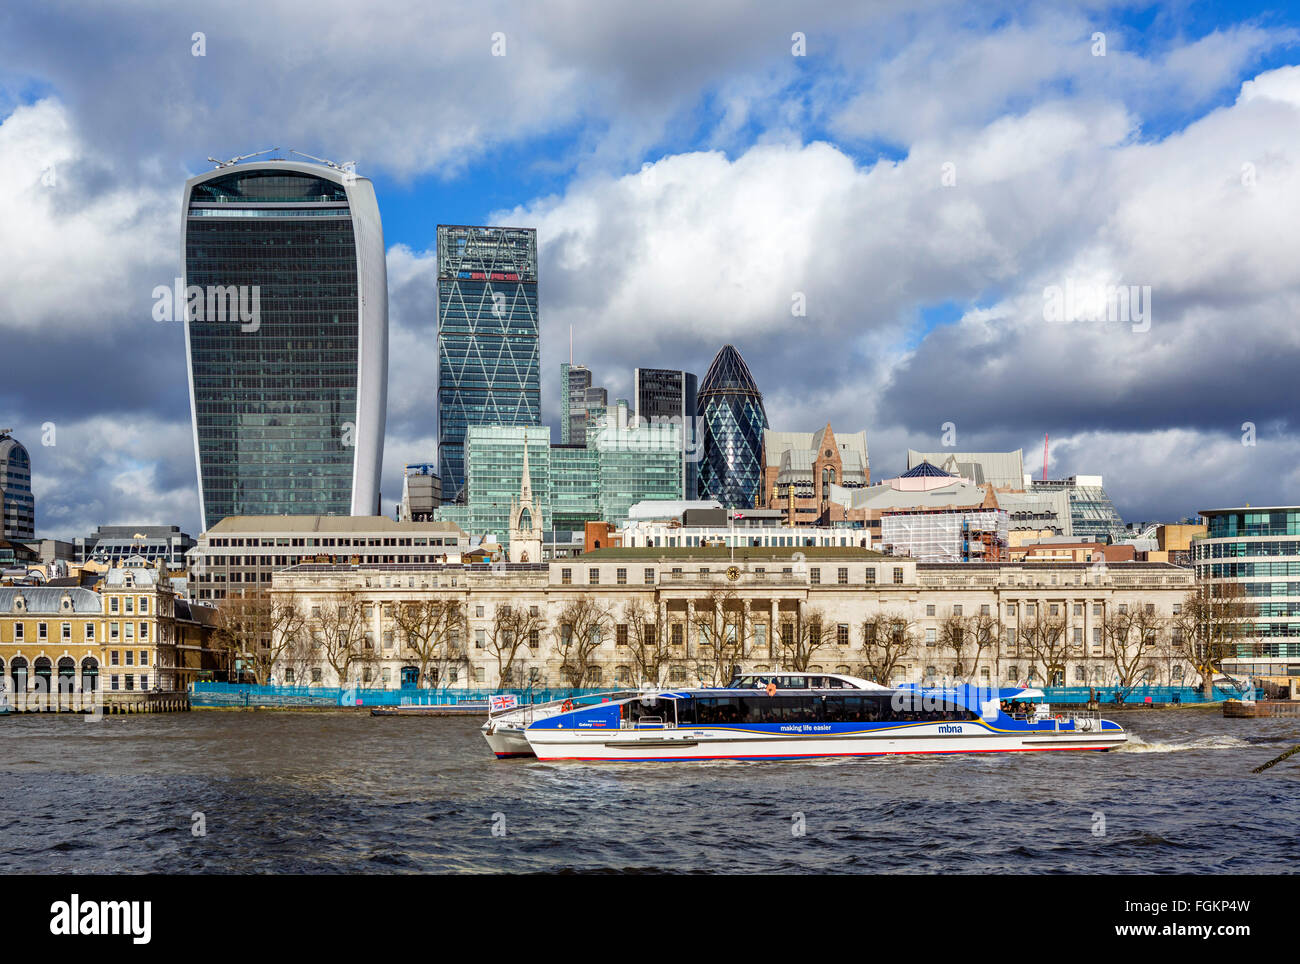 View over the River Thames to the City of London with Custom House and MBNA Thames Clipper in foreground, London, - Stock Image